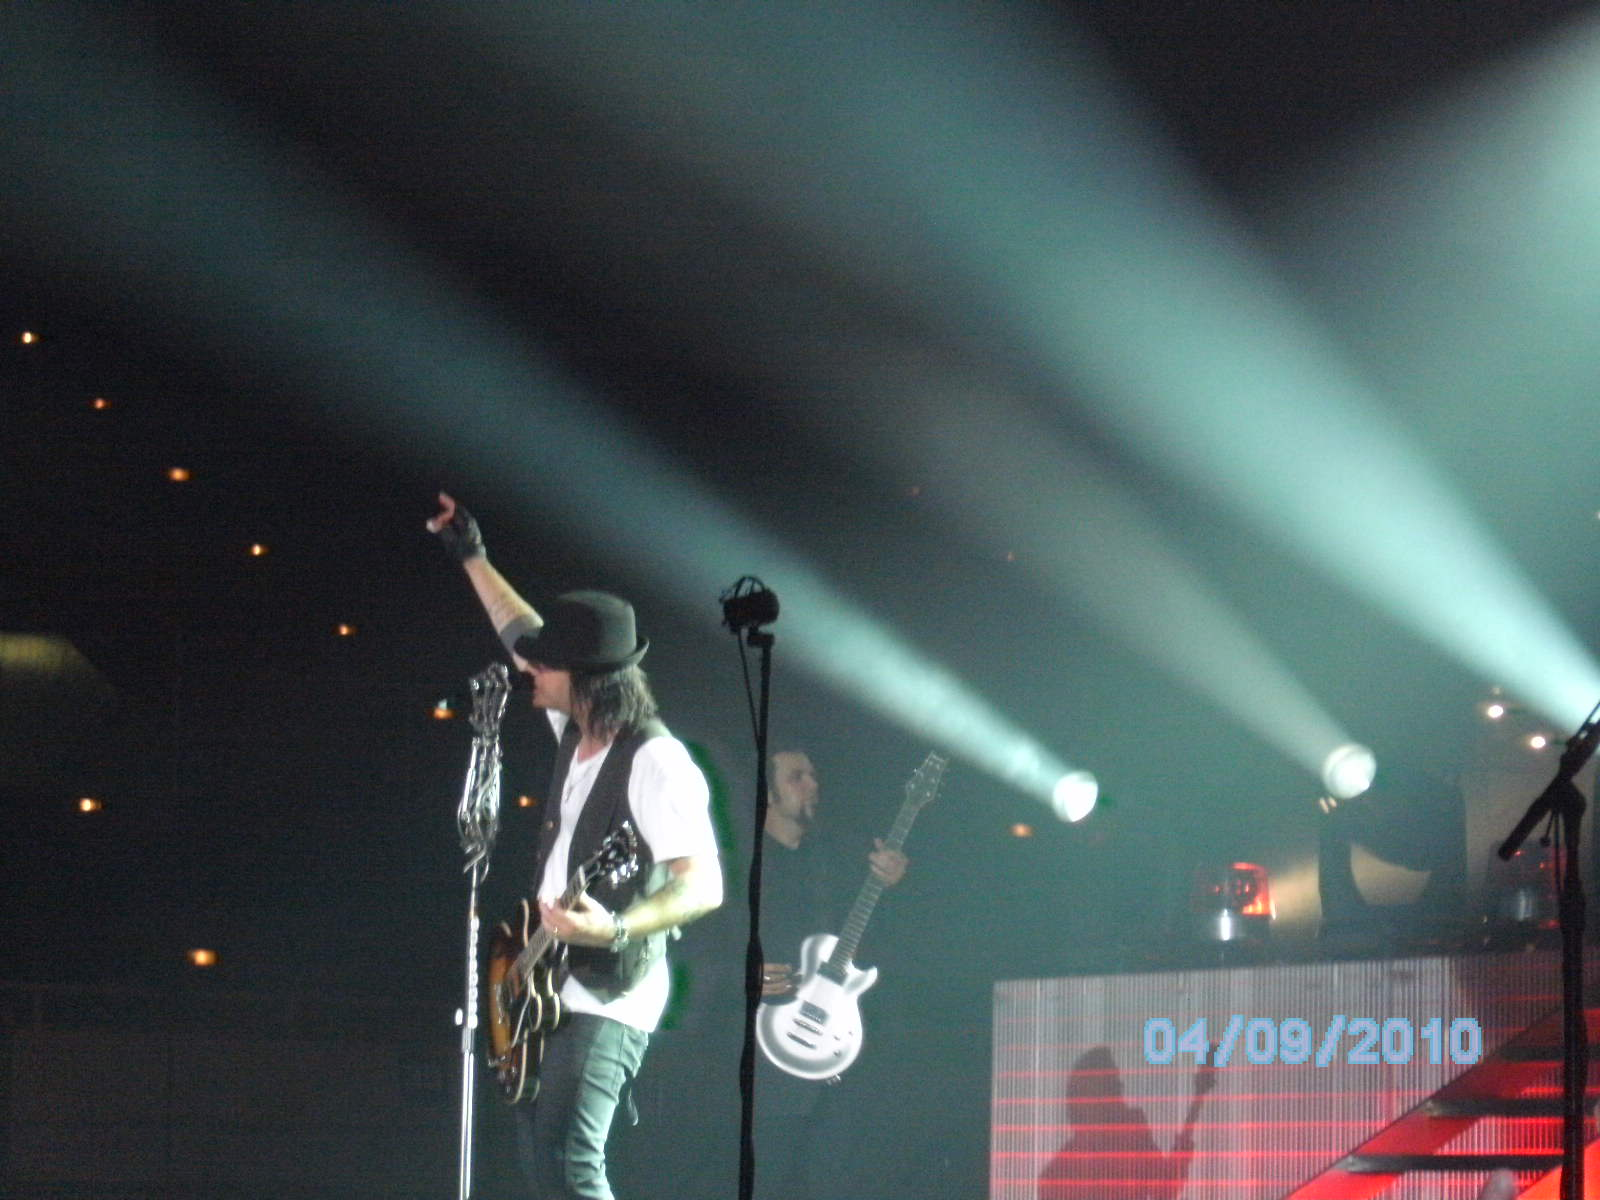 Ben Morse - another one of Three Days Grace